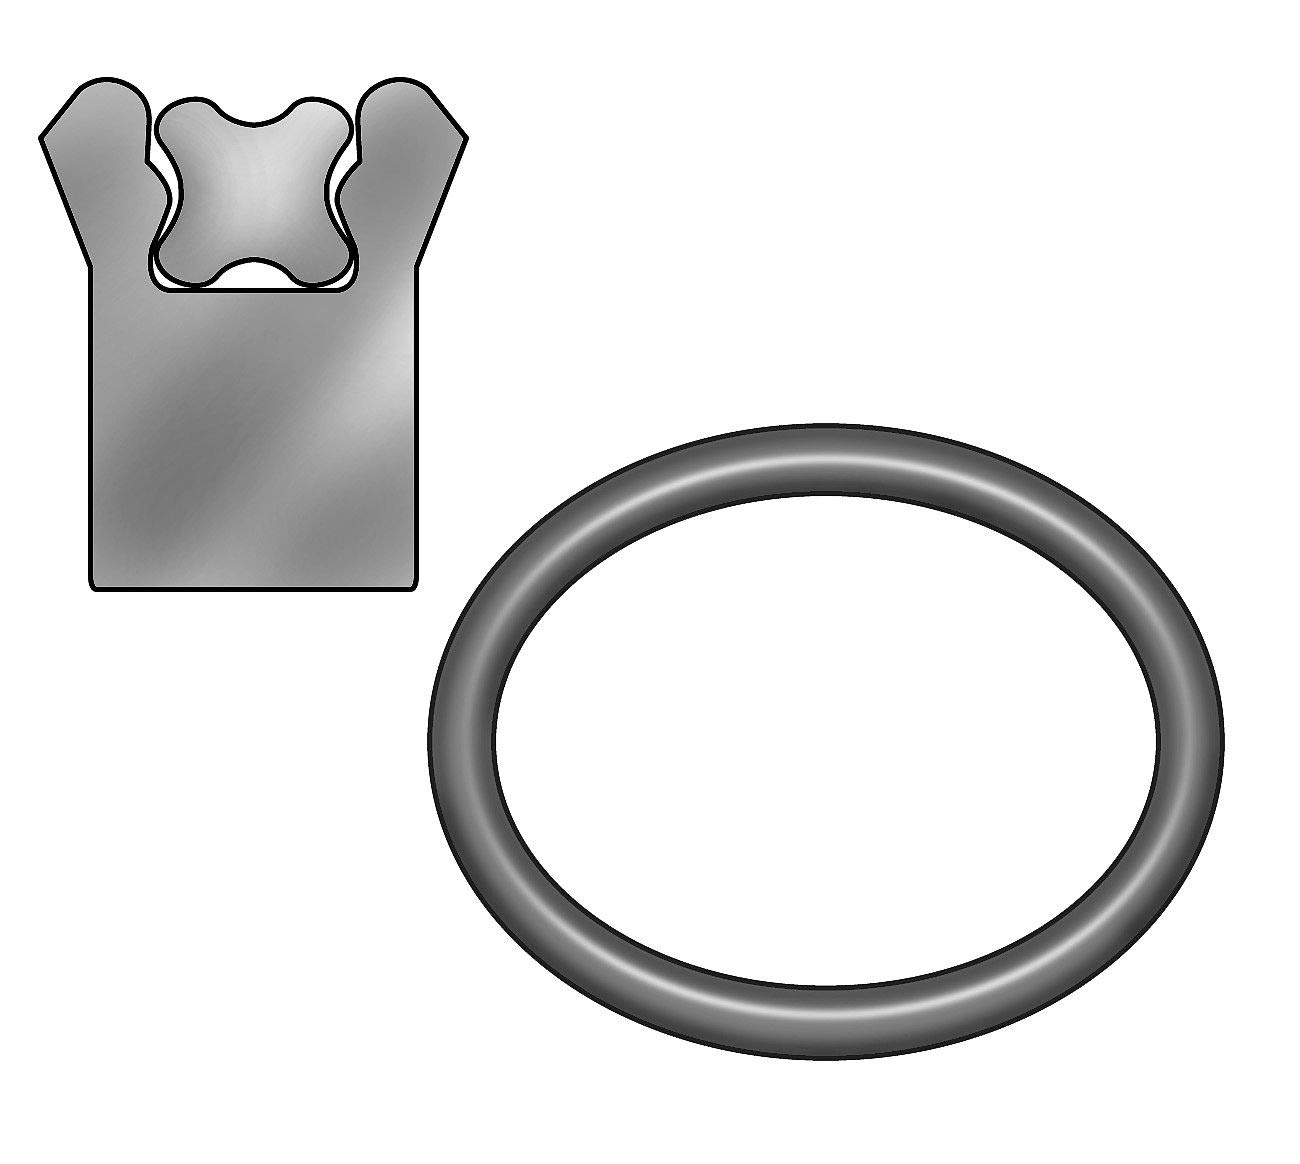 5/16'' x 3/16'' Type B Polyseal Rod Seal, Black - 2HZH4 (Pack of 2)